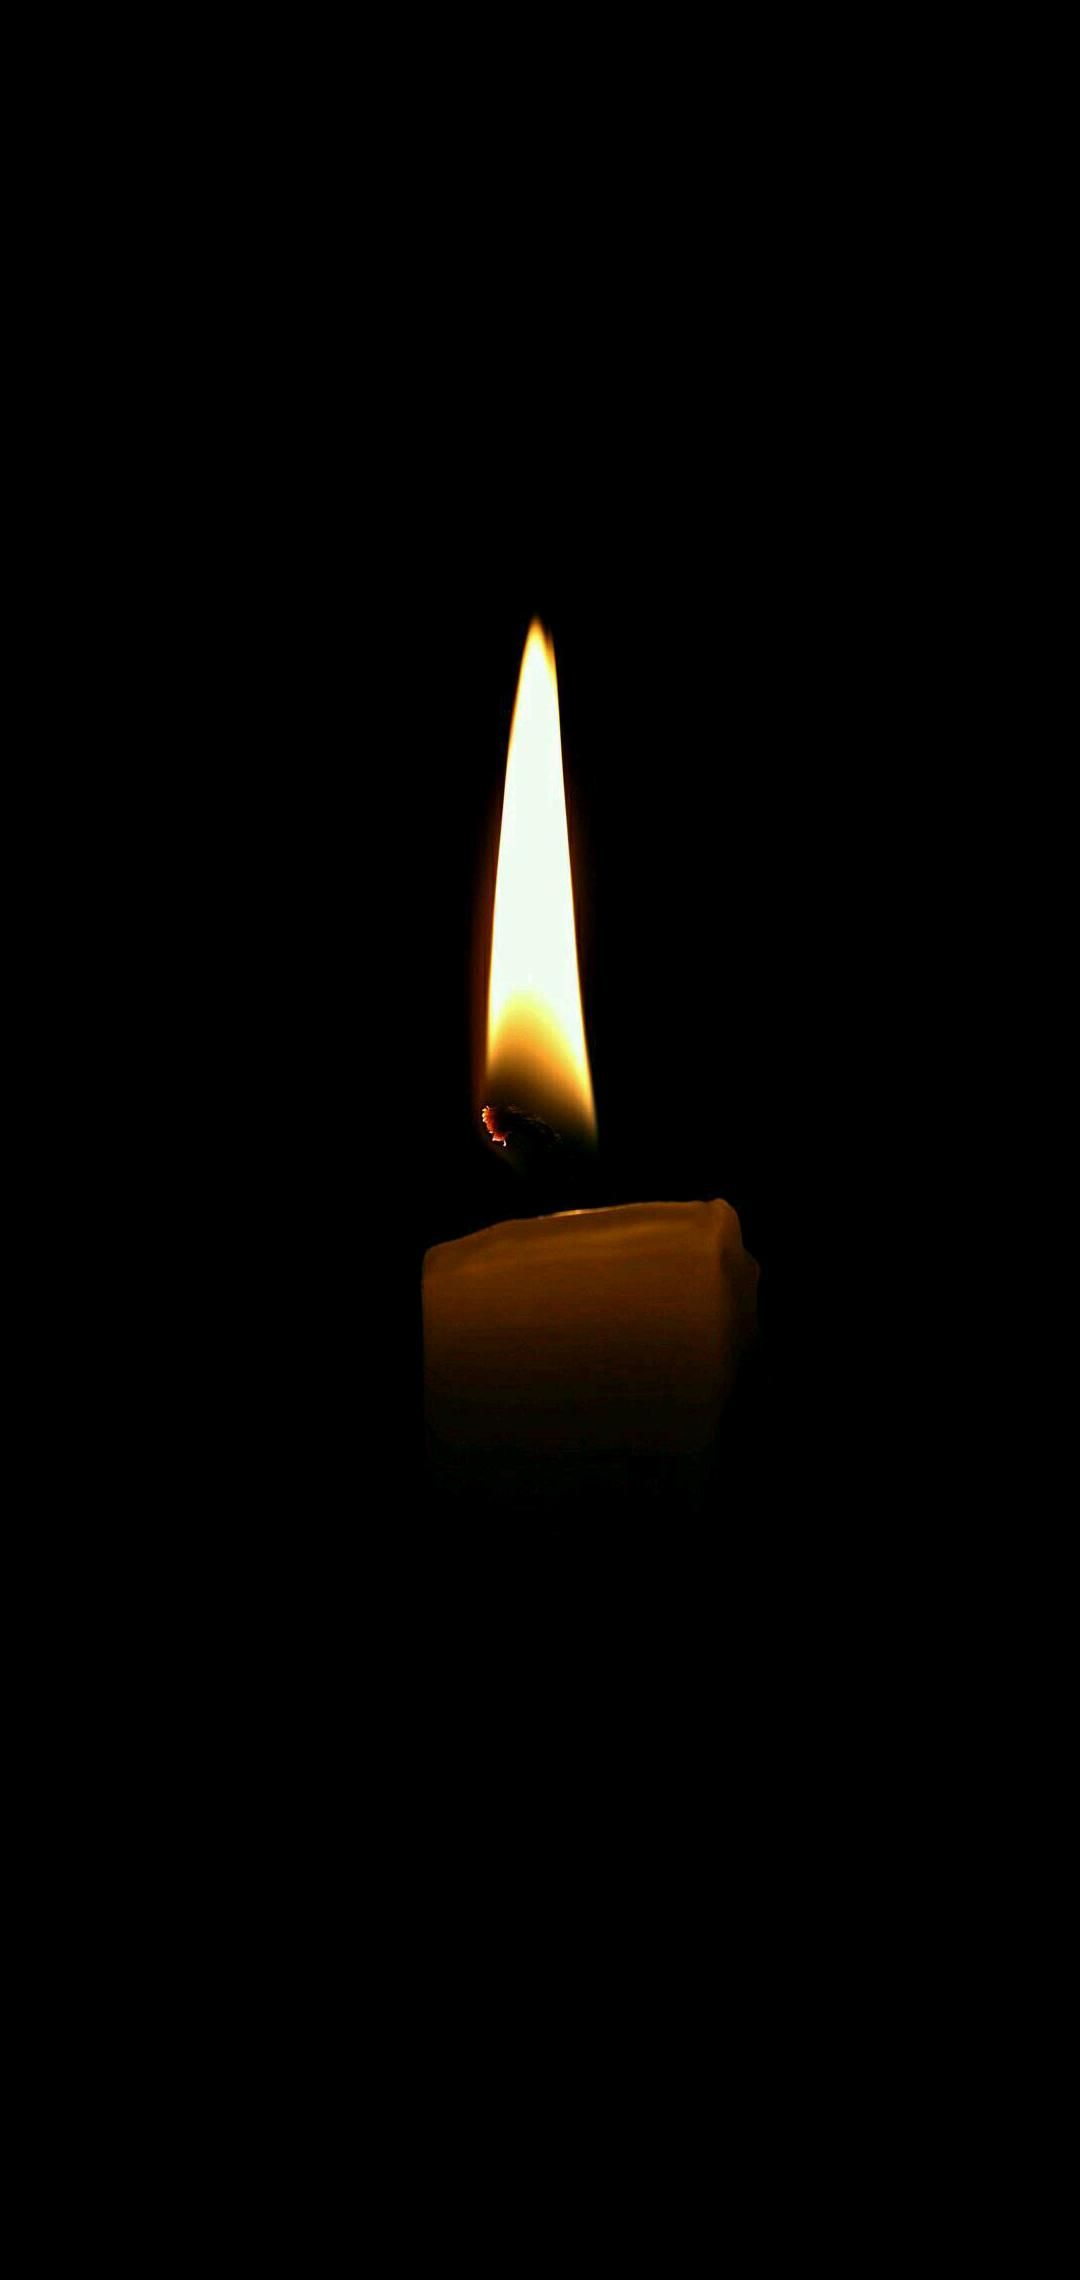 Amoled Candle Wallpaper Candles Wallpaper Dark Wallpaper Aesthetic Candles